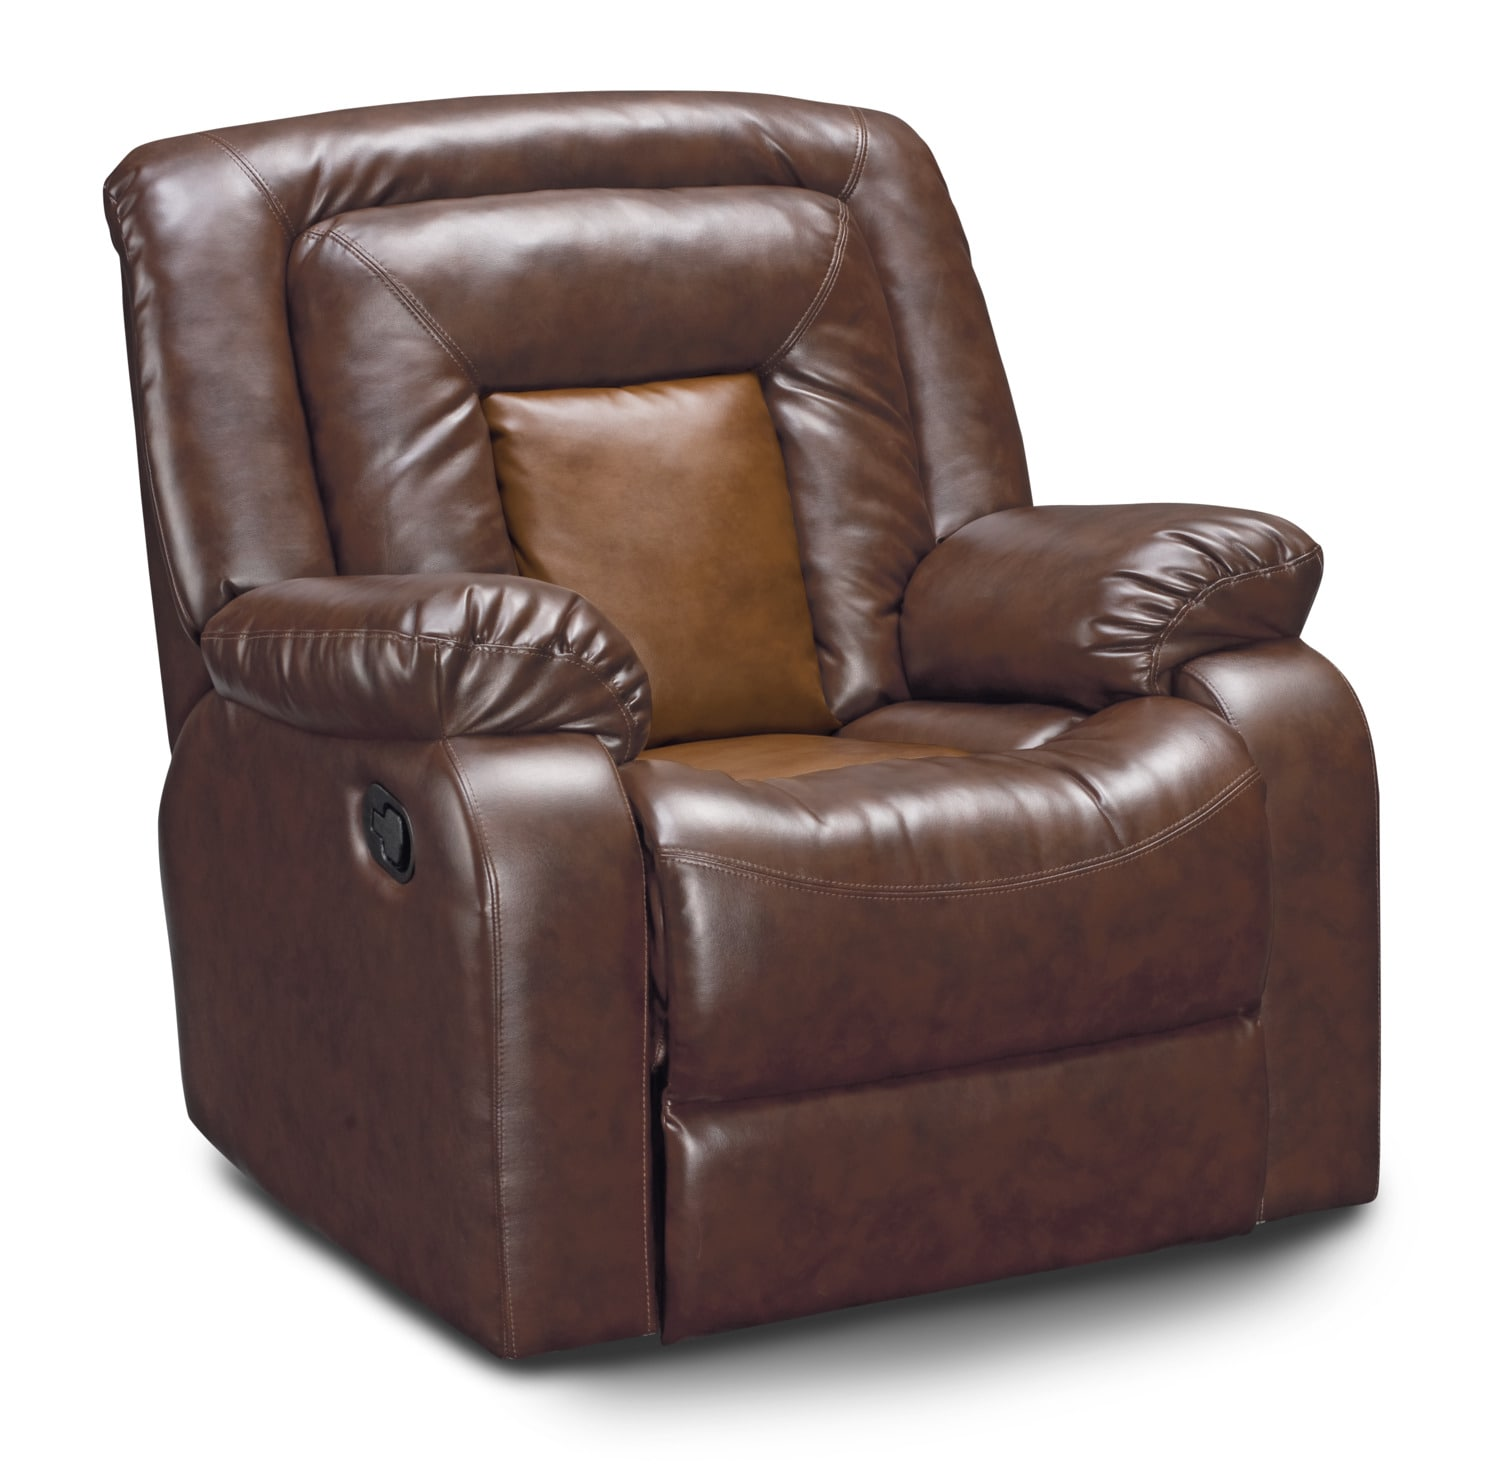 Mustang Dual Reclining Sofa Dual Reclining Loveseat and Recliner